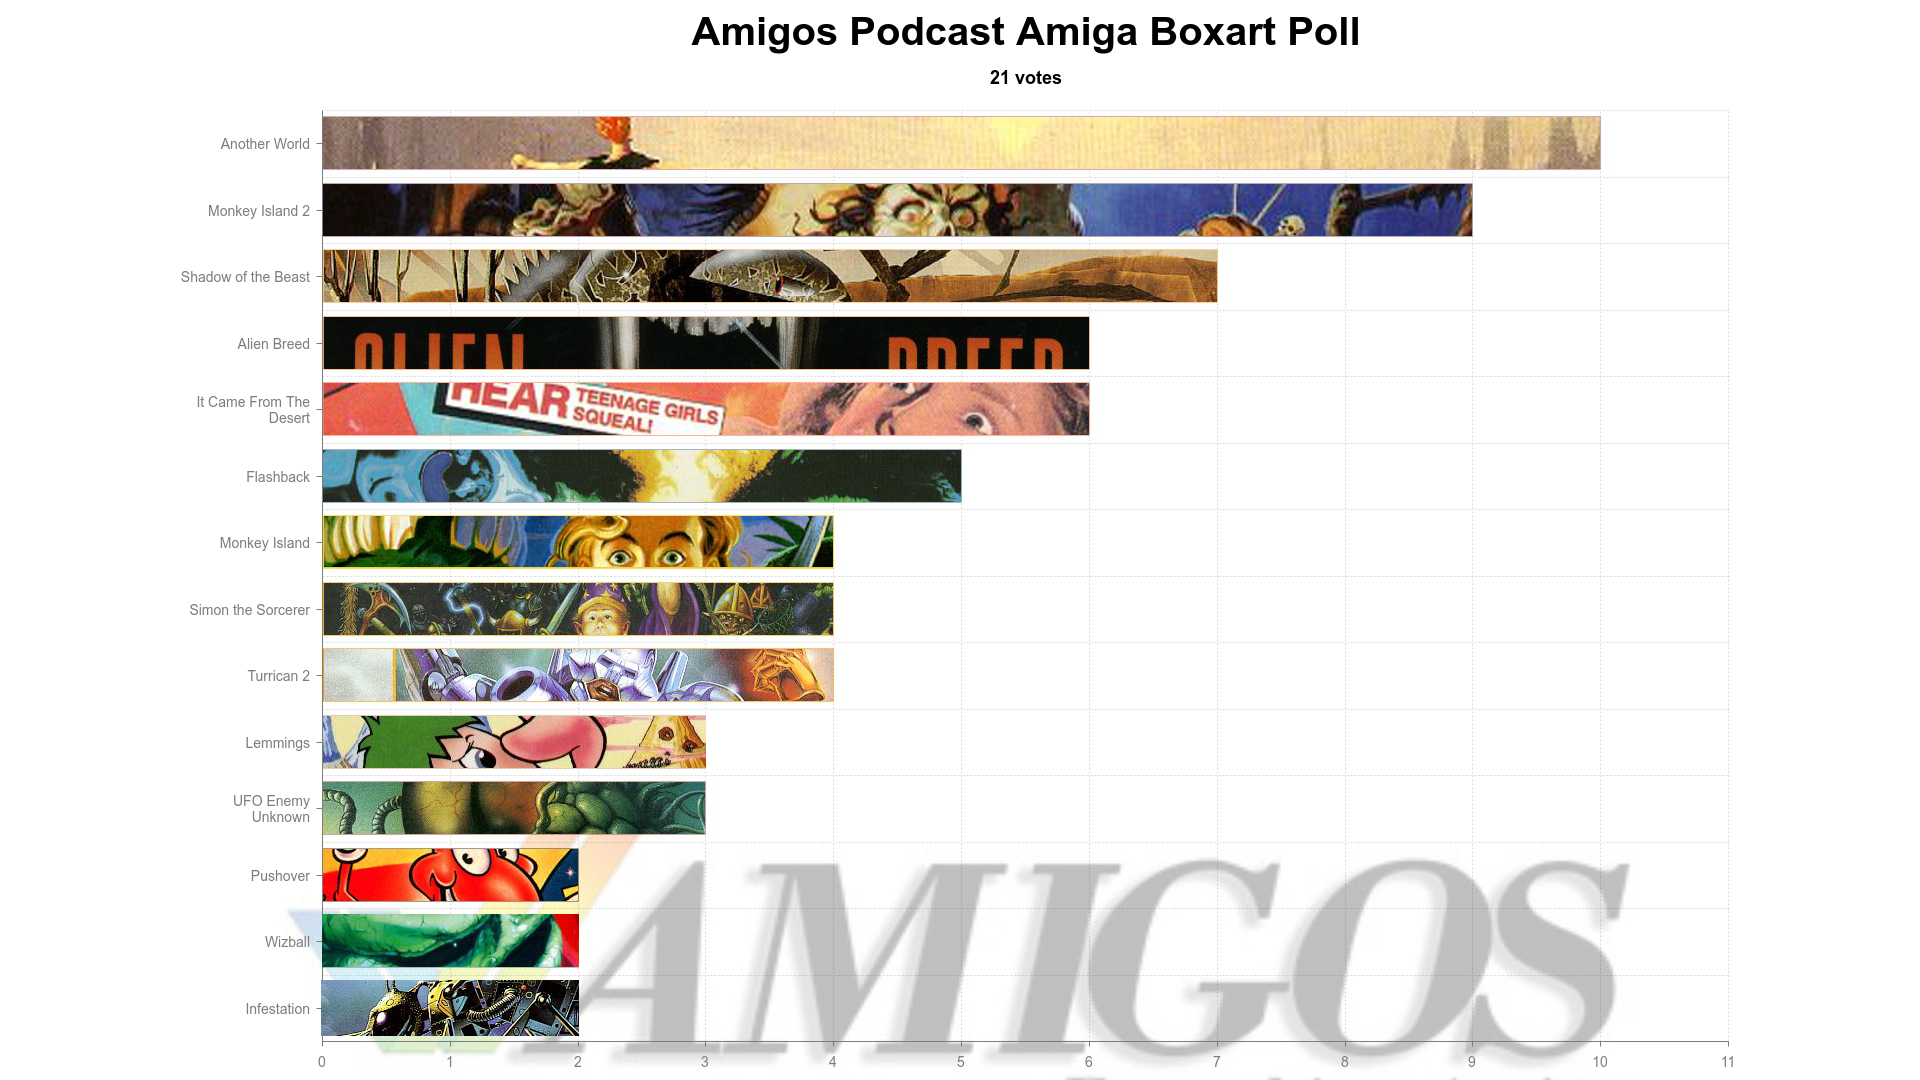 The winners of the Amigos boxart poll